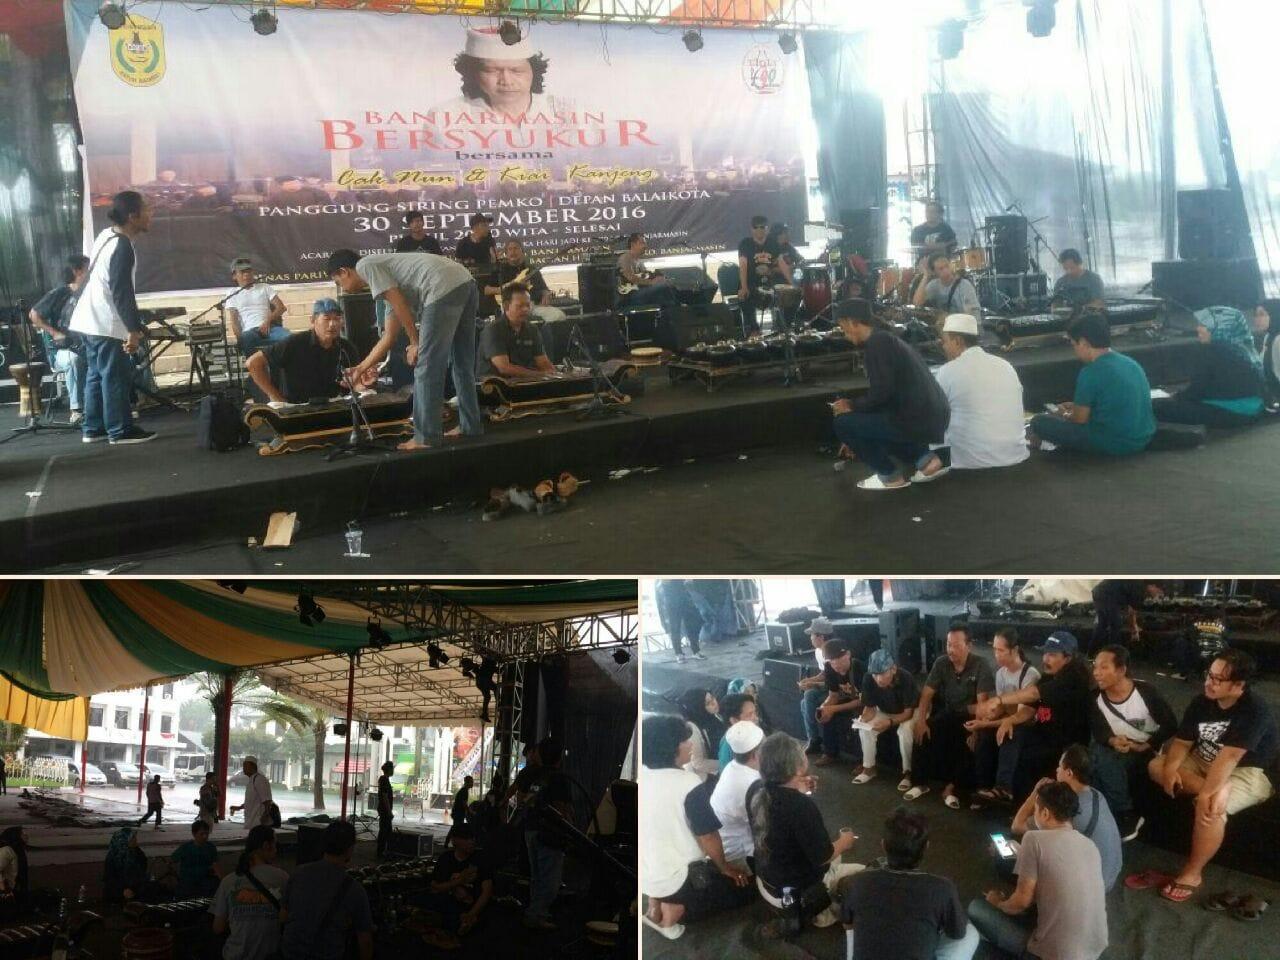 Check Sound Kiaikanjeng